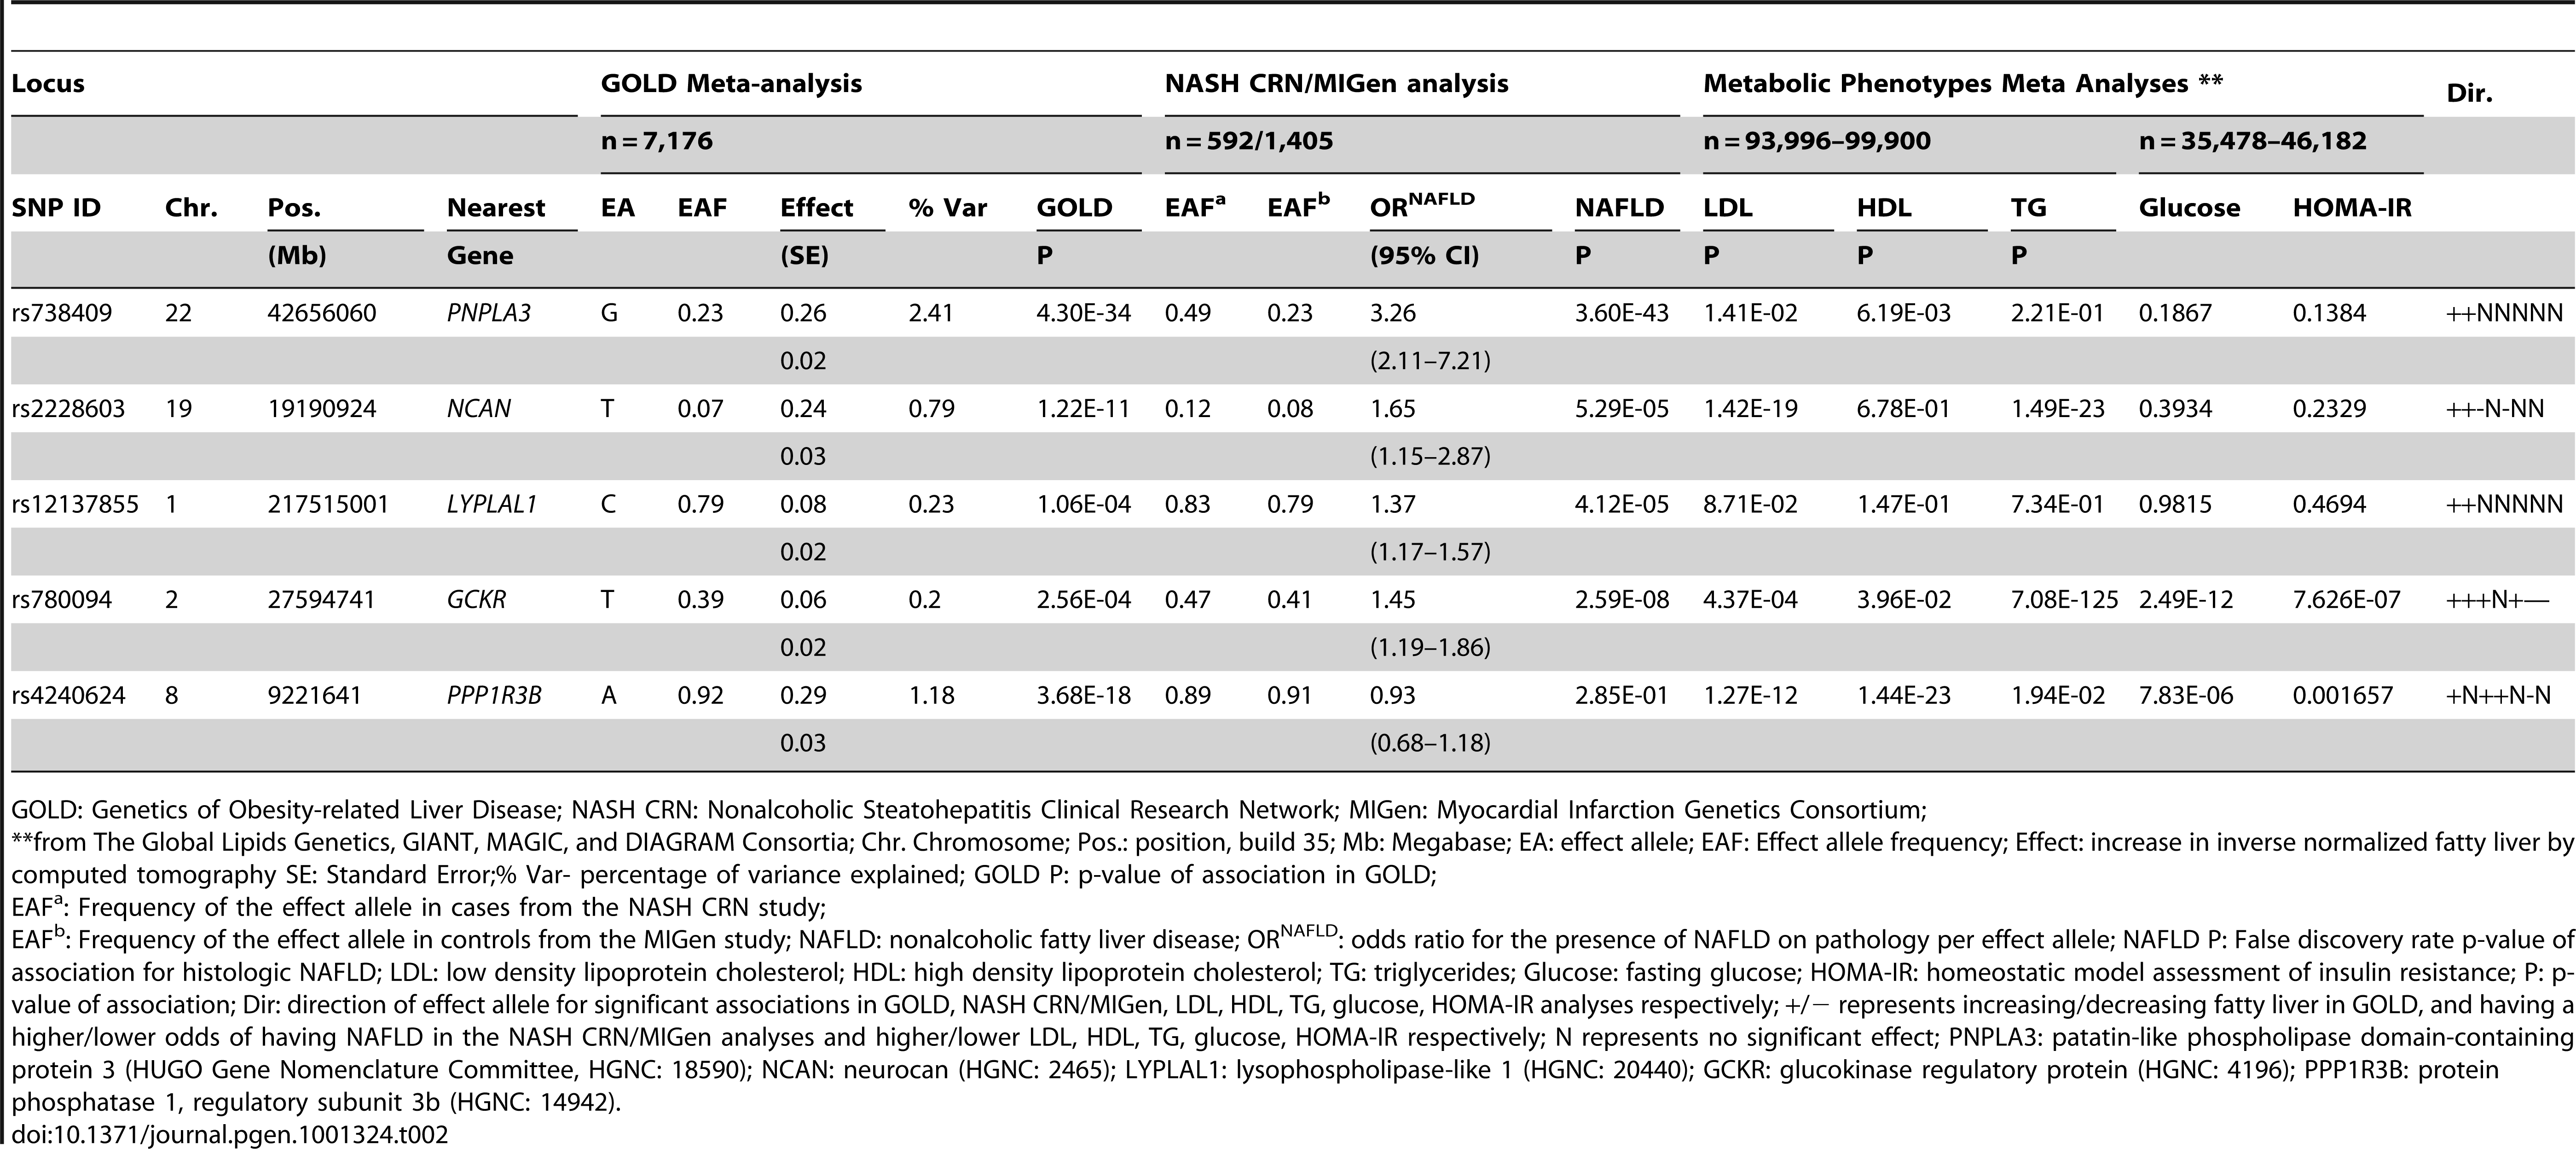 Genome-wide significant or replicating variants from GOLD, NASH CRN/MIGen, and metabolic phenotype analyses.